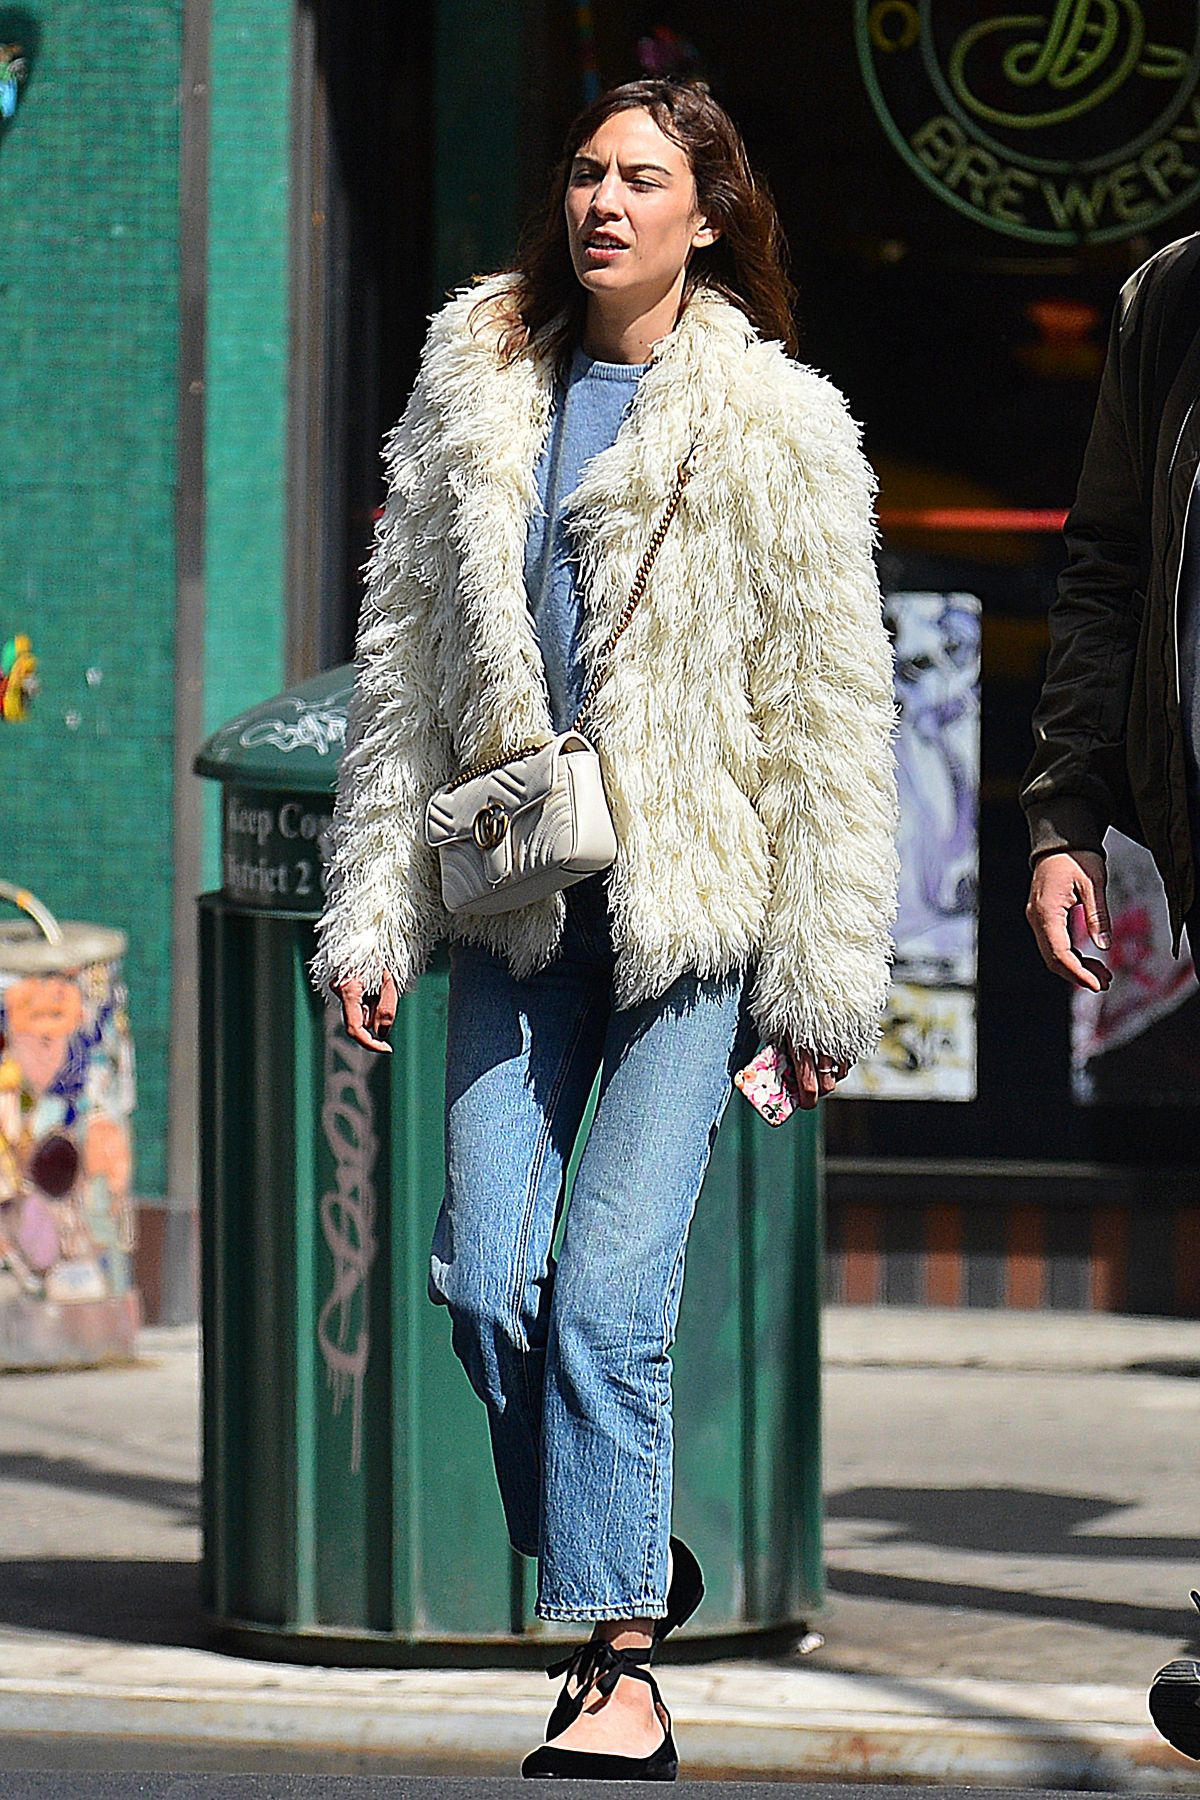 alexa-chung-out-and-about-in-new-york-04-05-2017_1.jpg